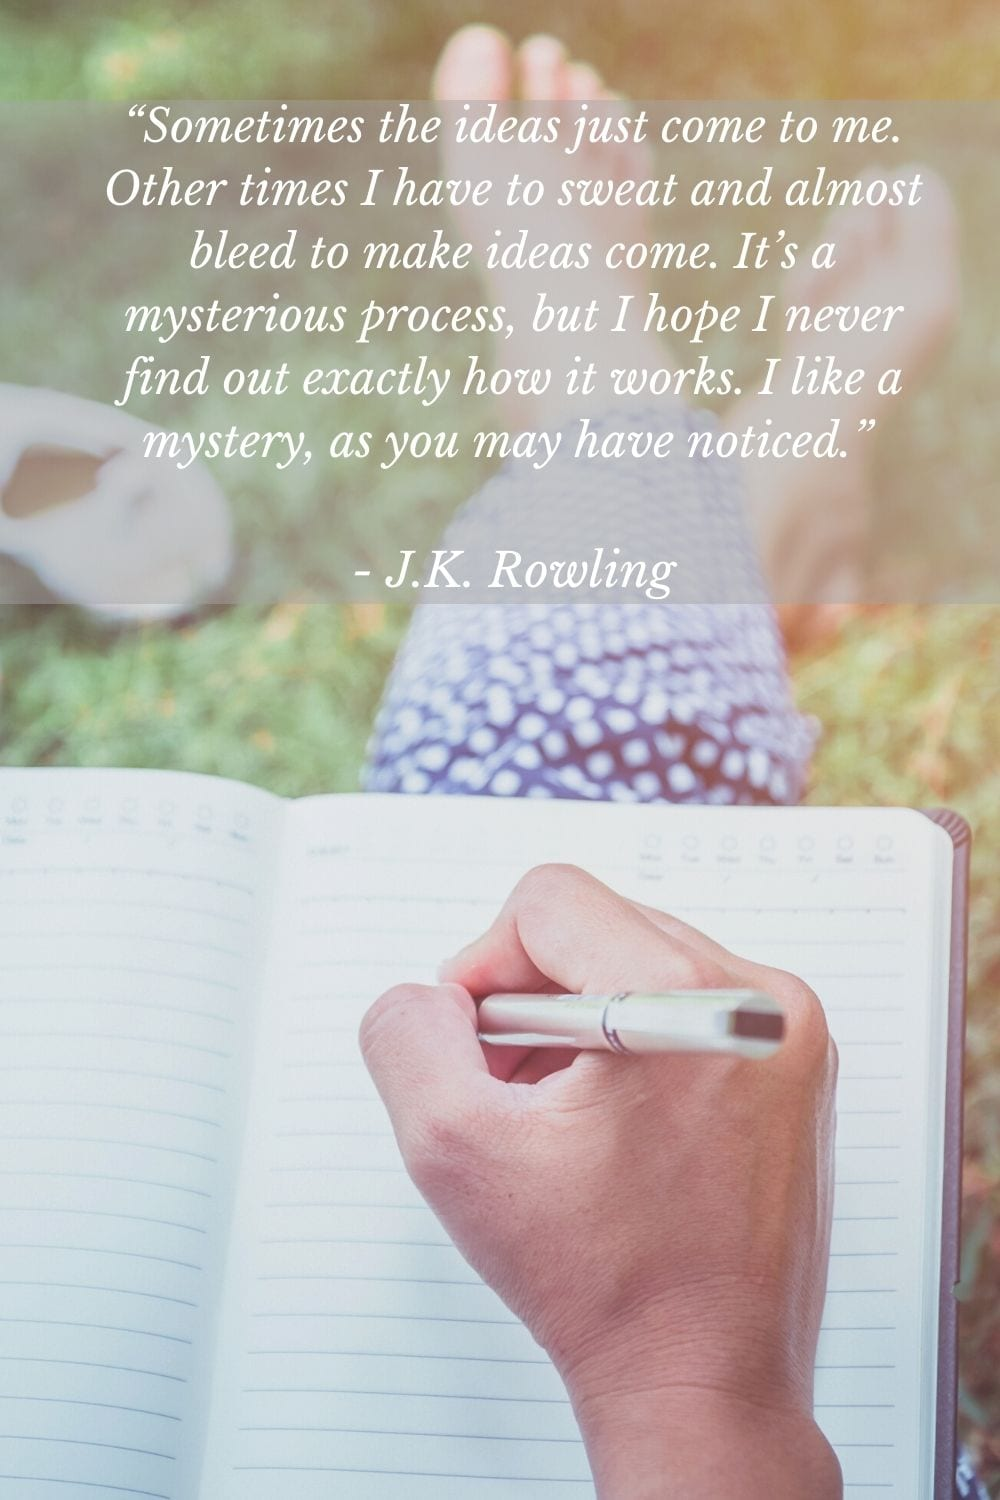 JK Rowling Writing quote